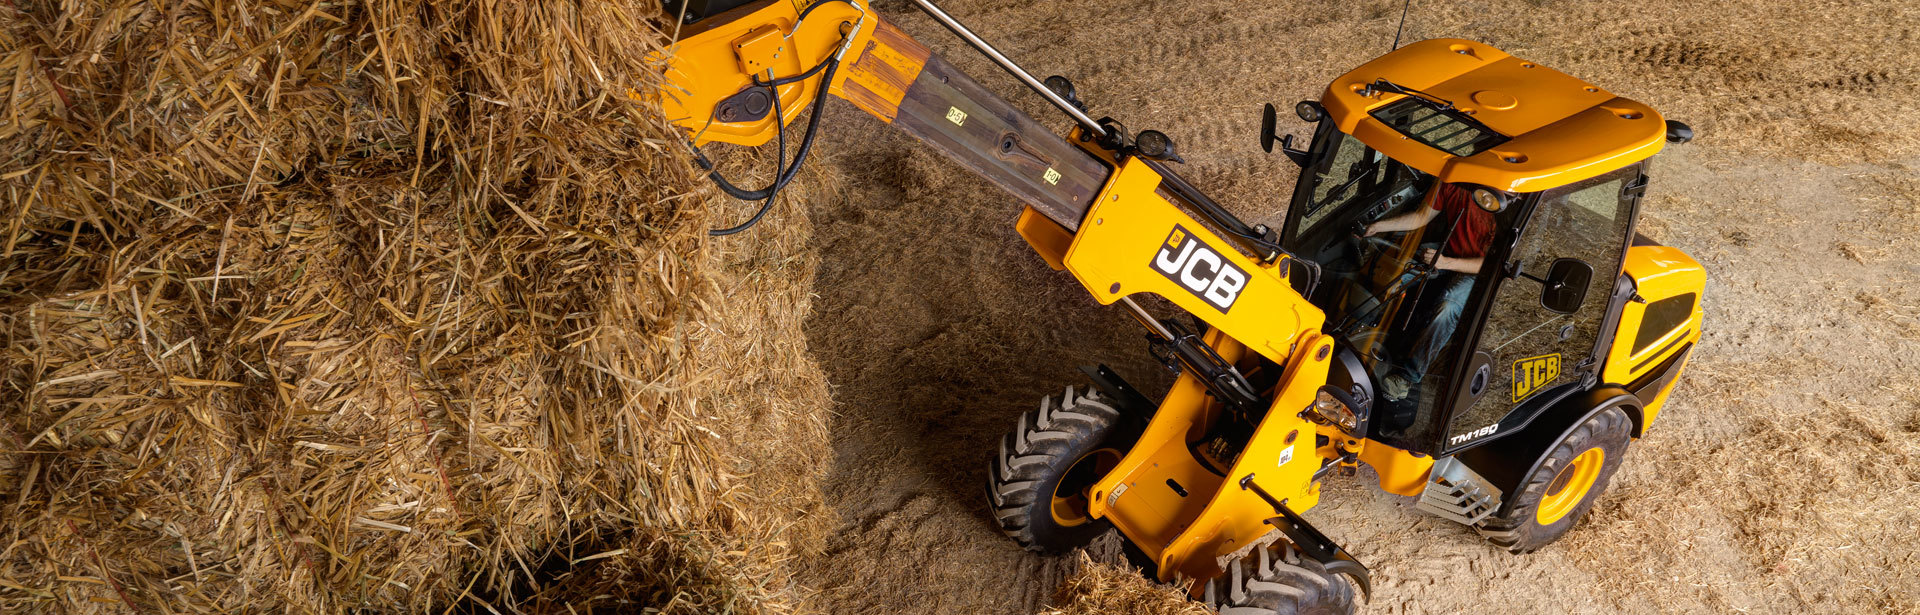 banner-jcb-telescopic-wheel-loader3.jpg